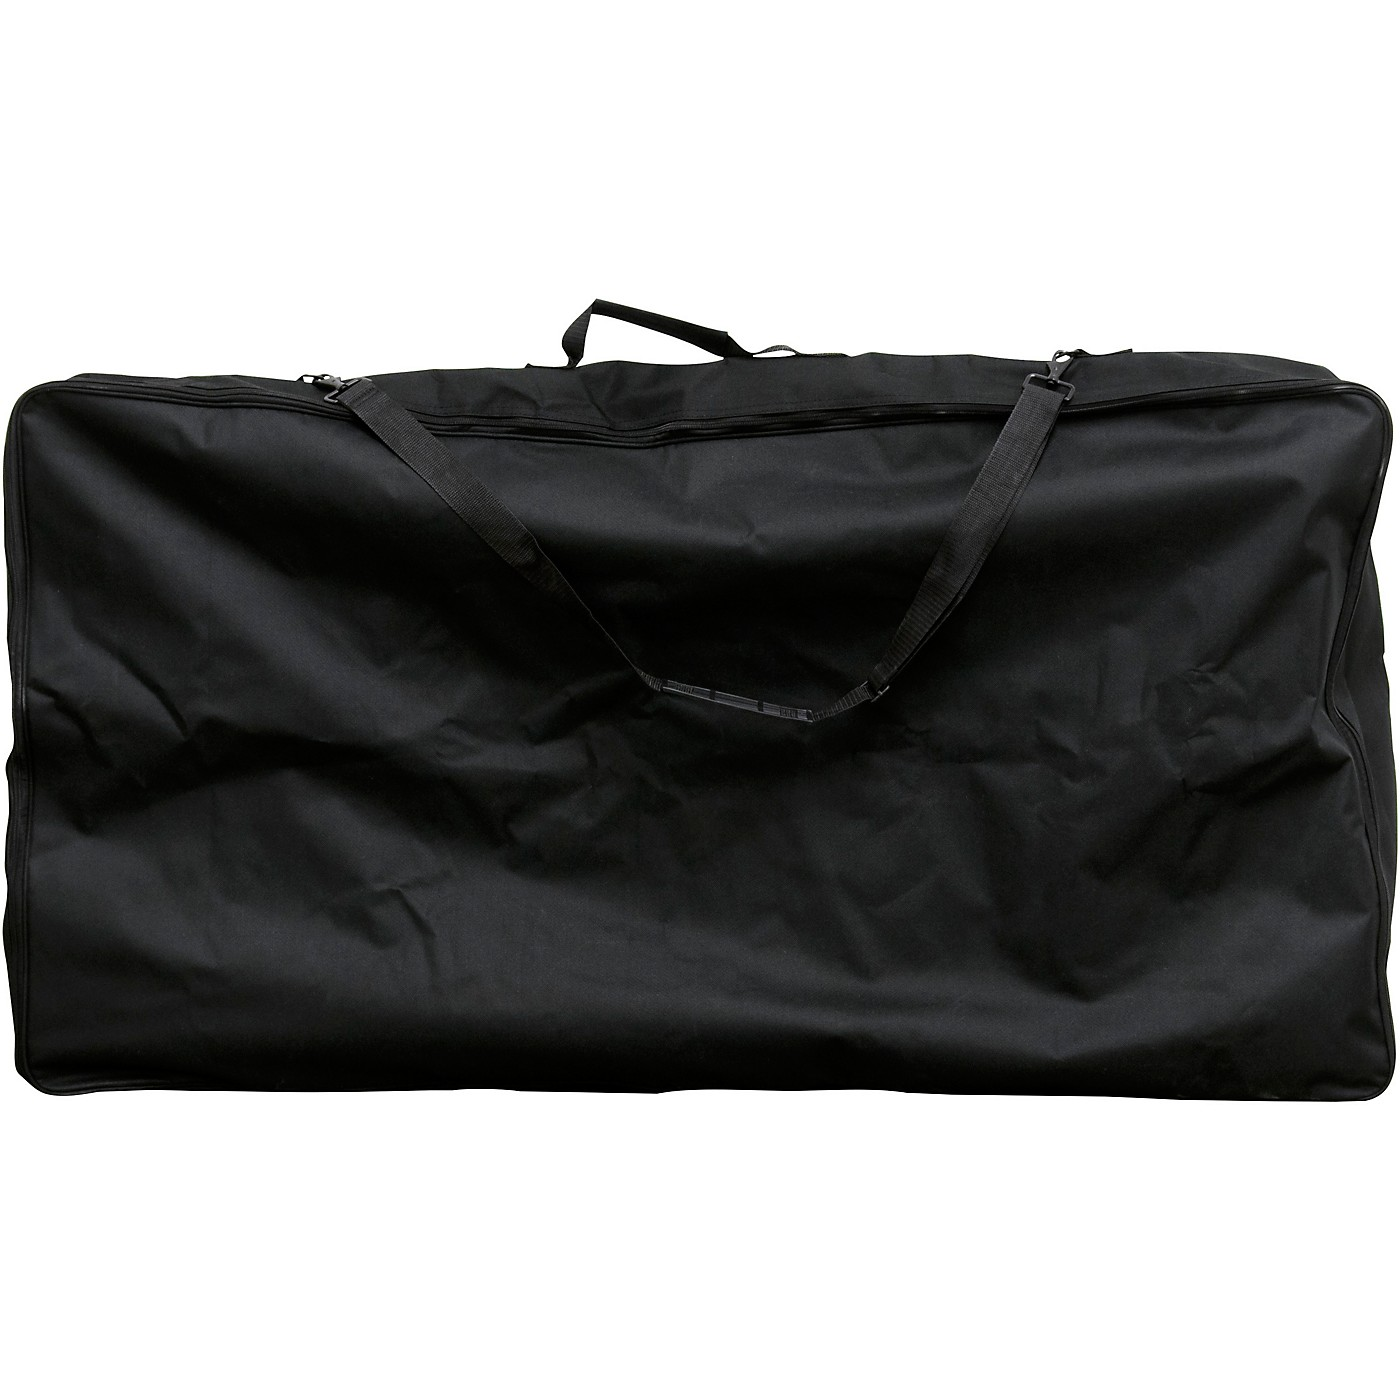 American DJ PRO-ETBS Black Carry Bag For The Pro Event Table II thumbnail